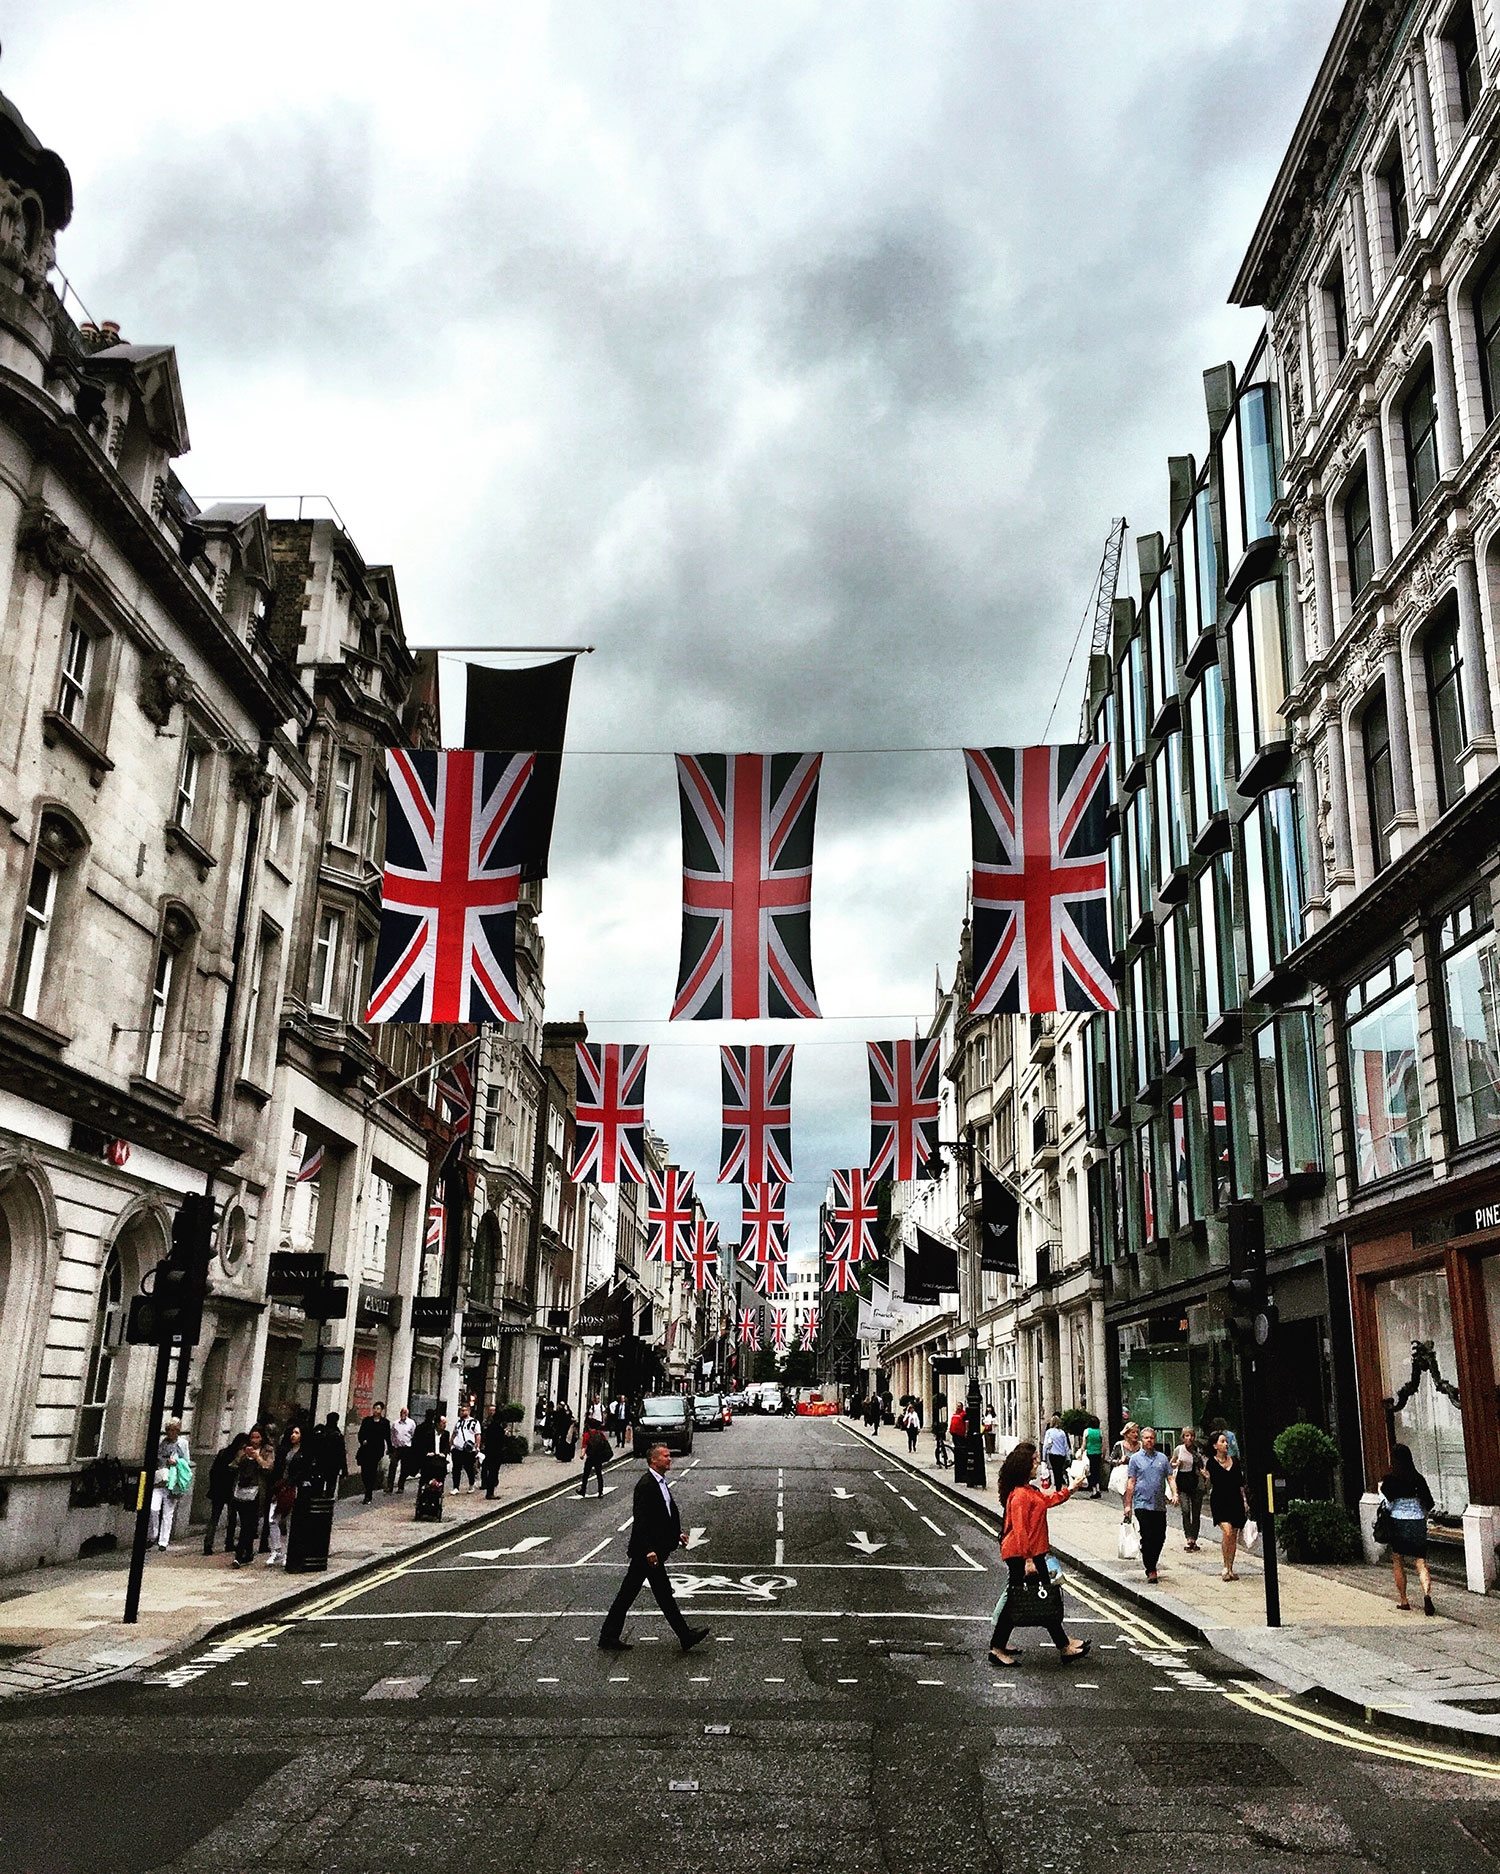 Rows of 3 United Kingdom flags hang across a road in London